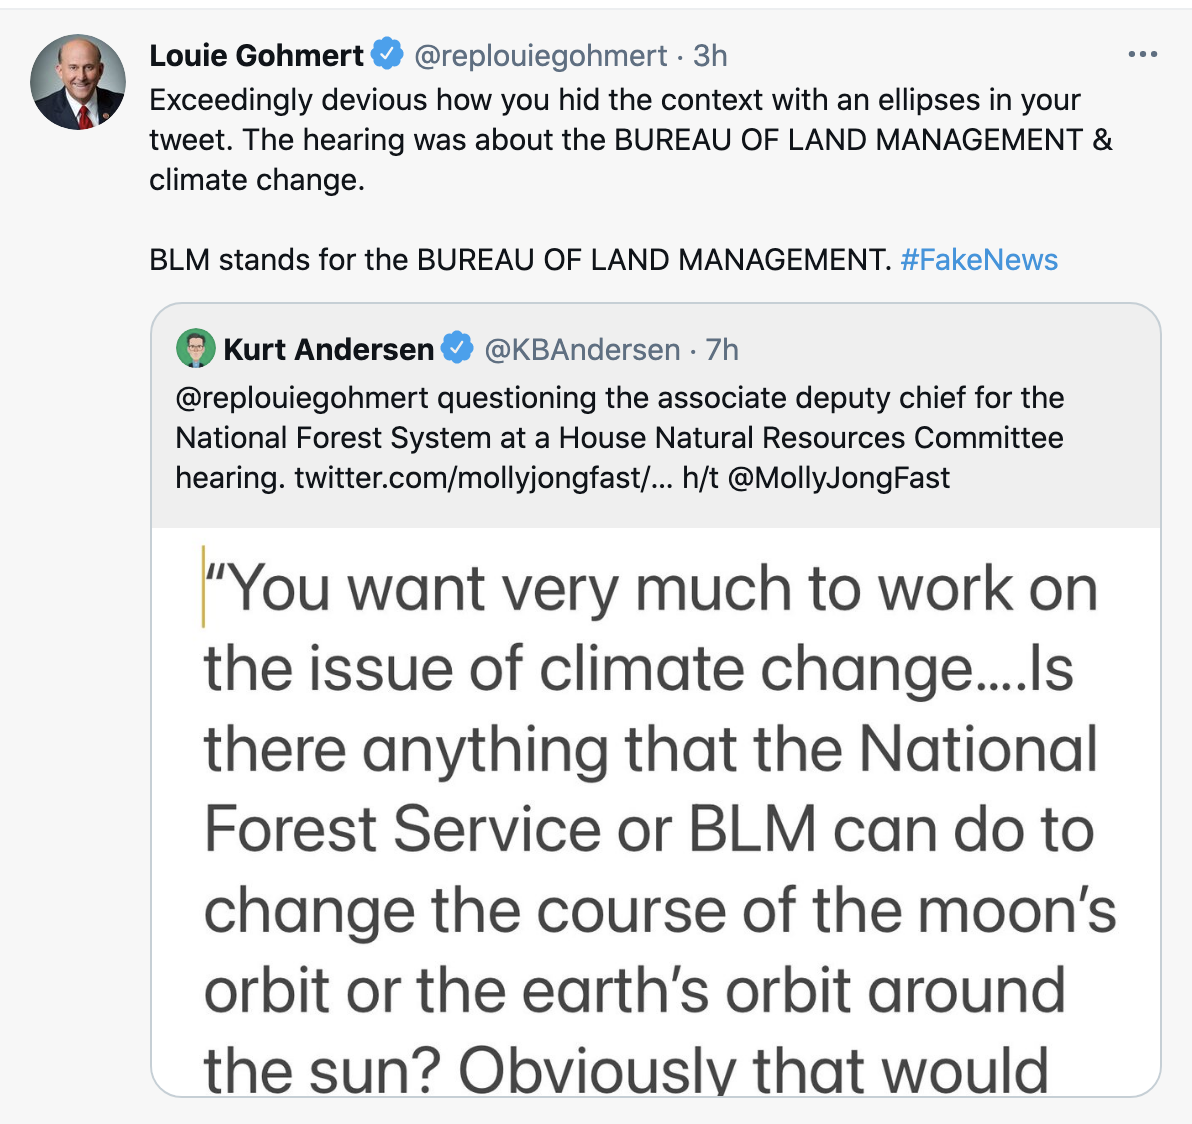 Screen-Shot-2021-06-09-at-2.21.38-PM-1 Gohmert Wants Scientists To Alter Earth's Orbit To Fight Fires Conspiracy Theory Environment Featured Politics Top Stories